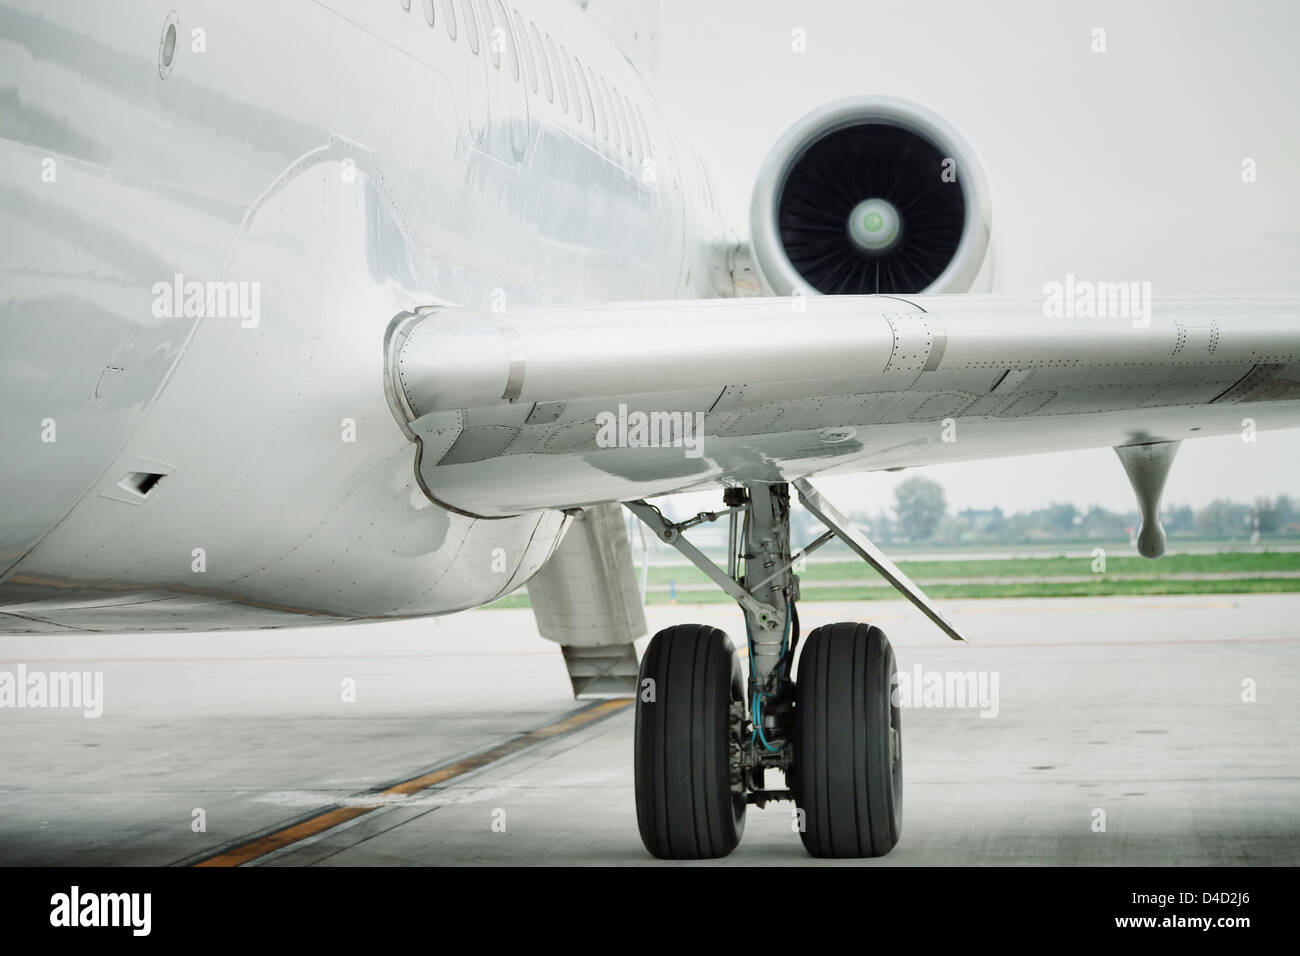 wing and engine of passenger airplane in airport - Stock Image